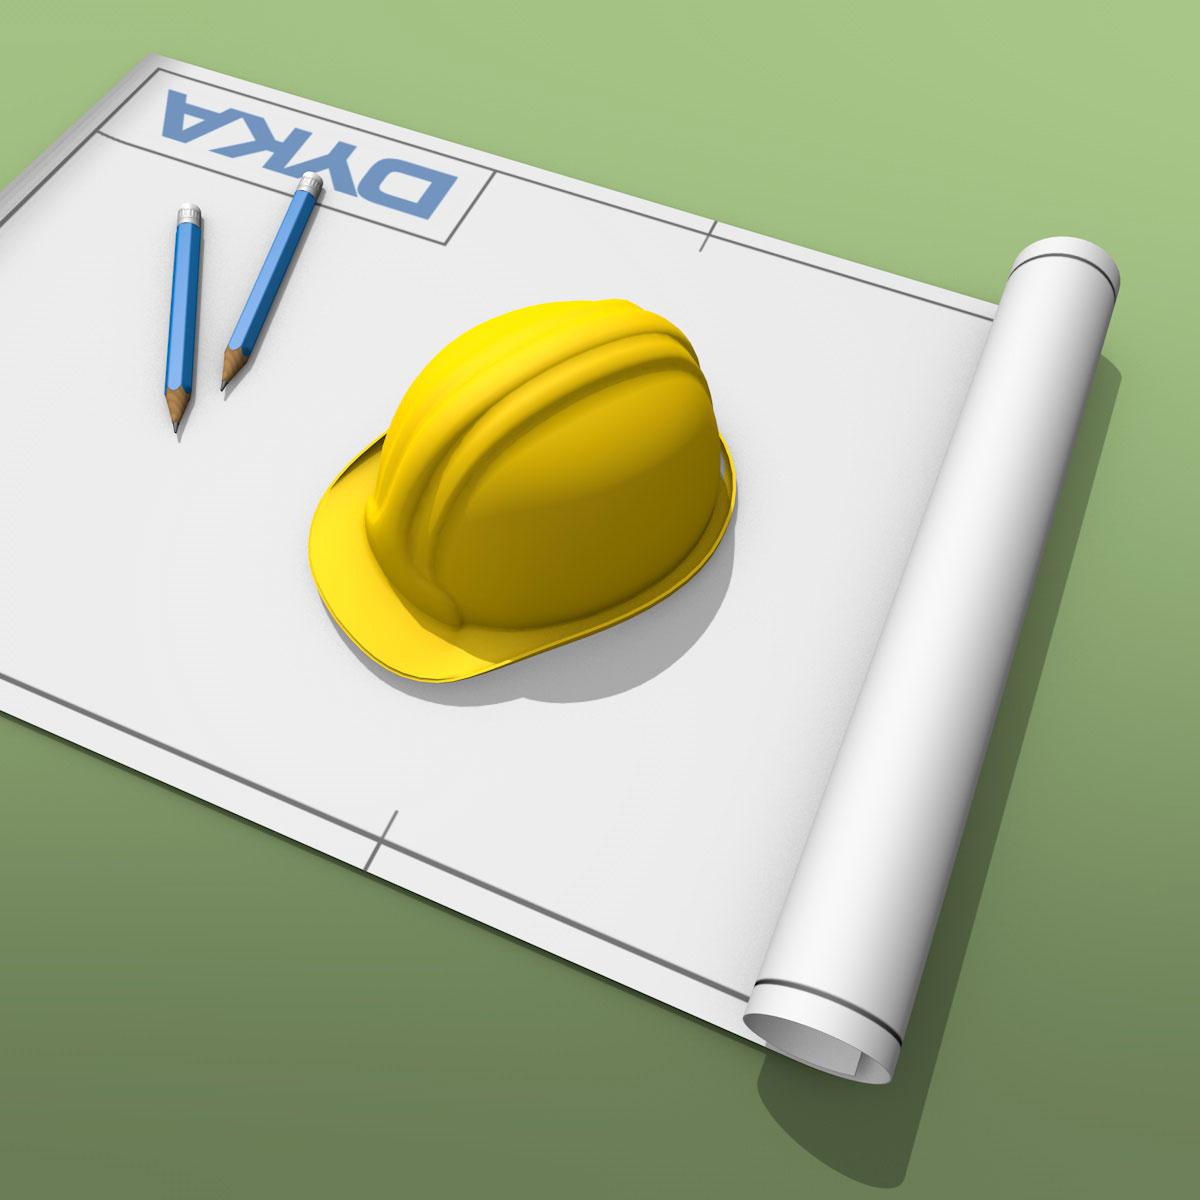 Hard hat with a construction drawing and 2 pencils. Icon for DYKA plastics